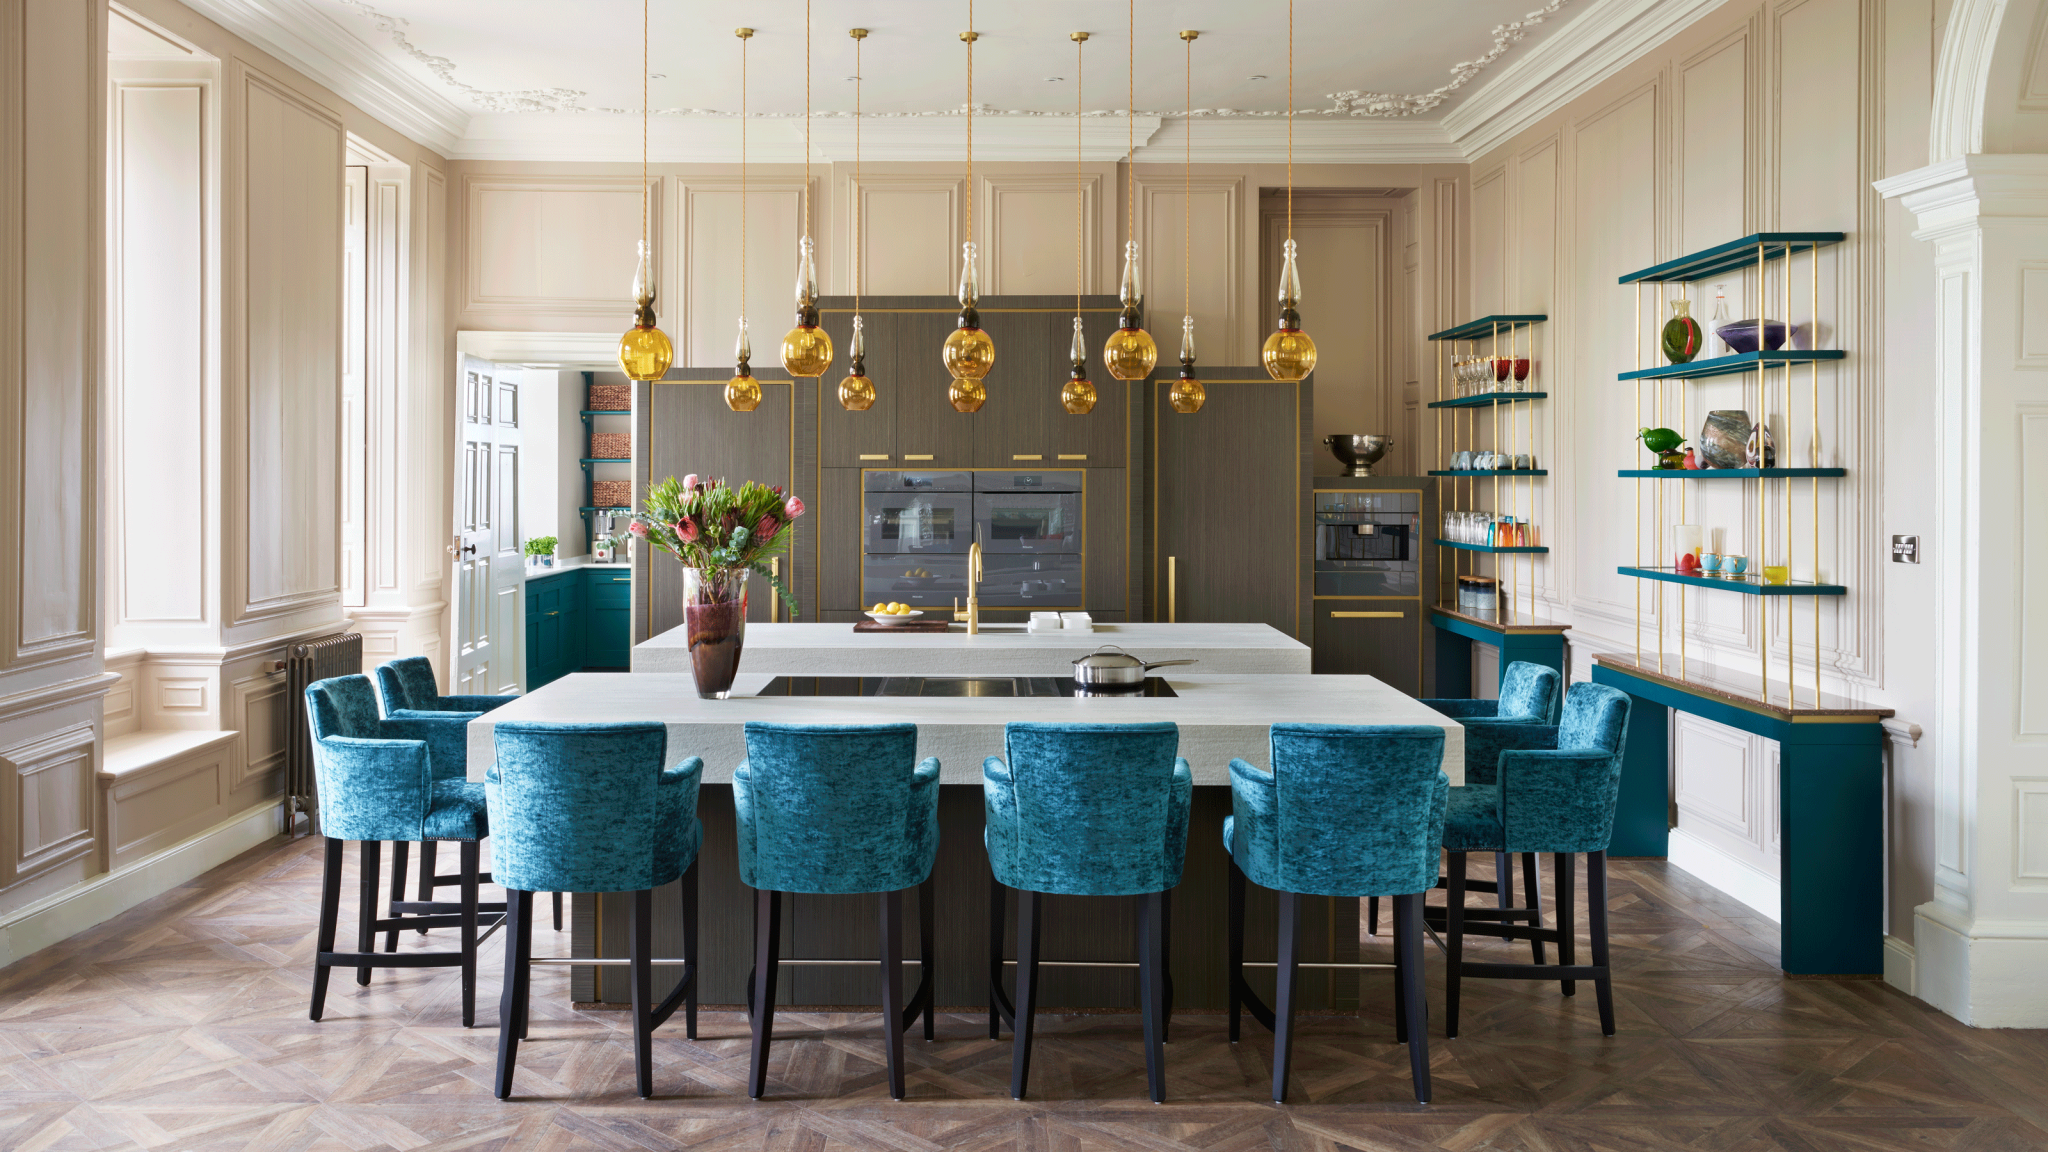 The ultimate interior design lessons we've learned